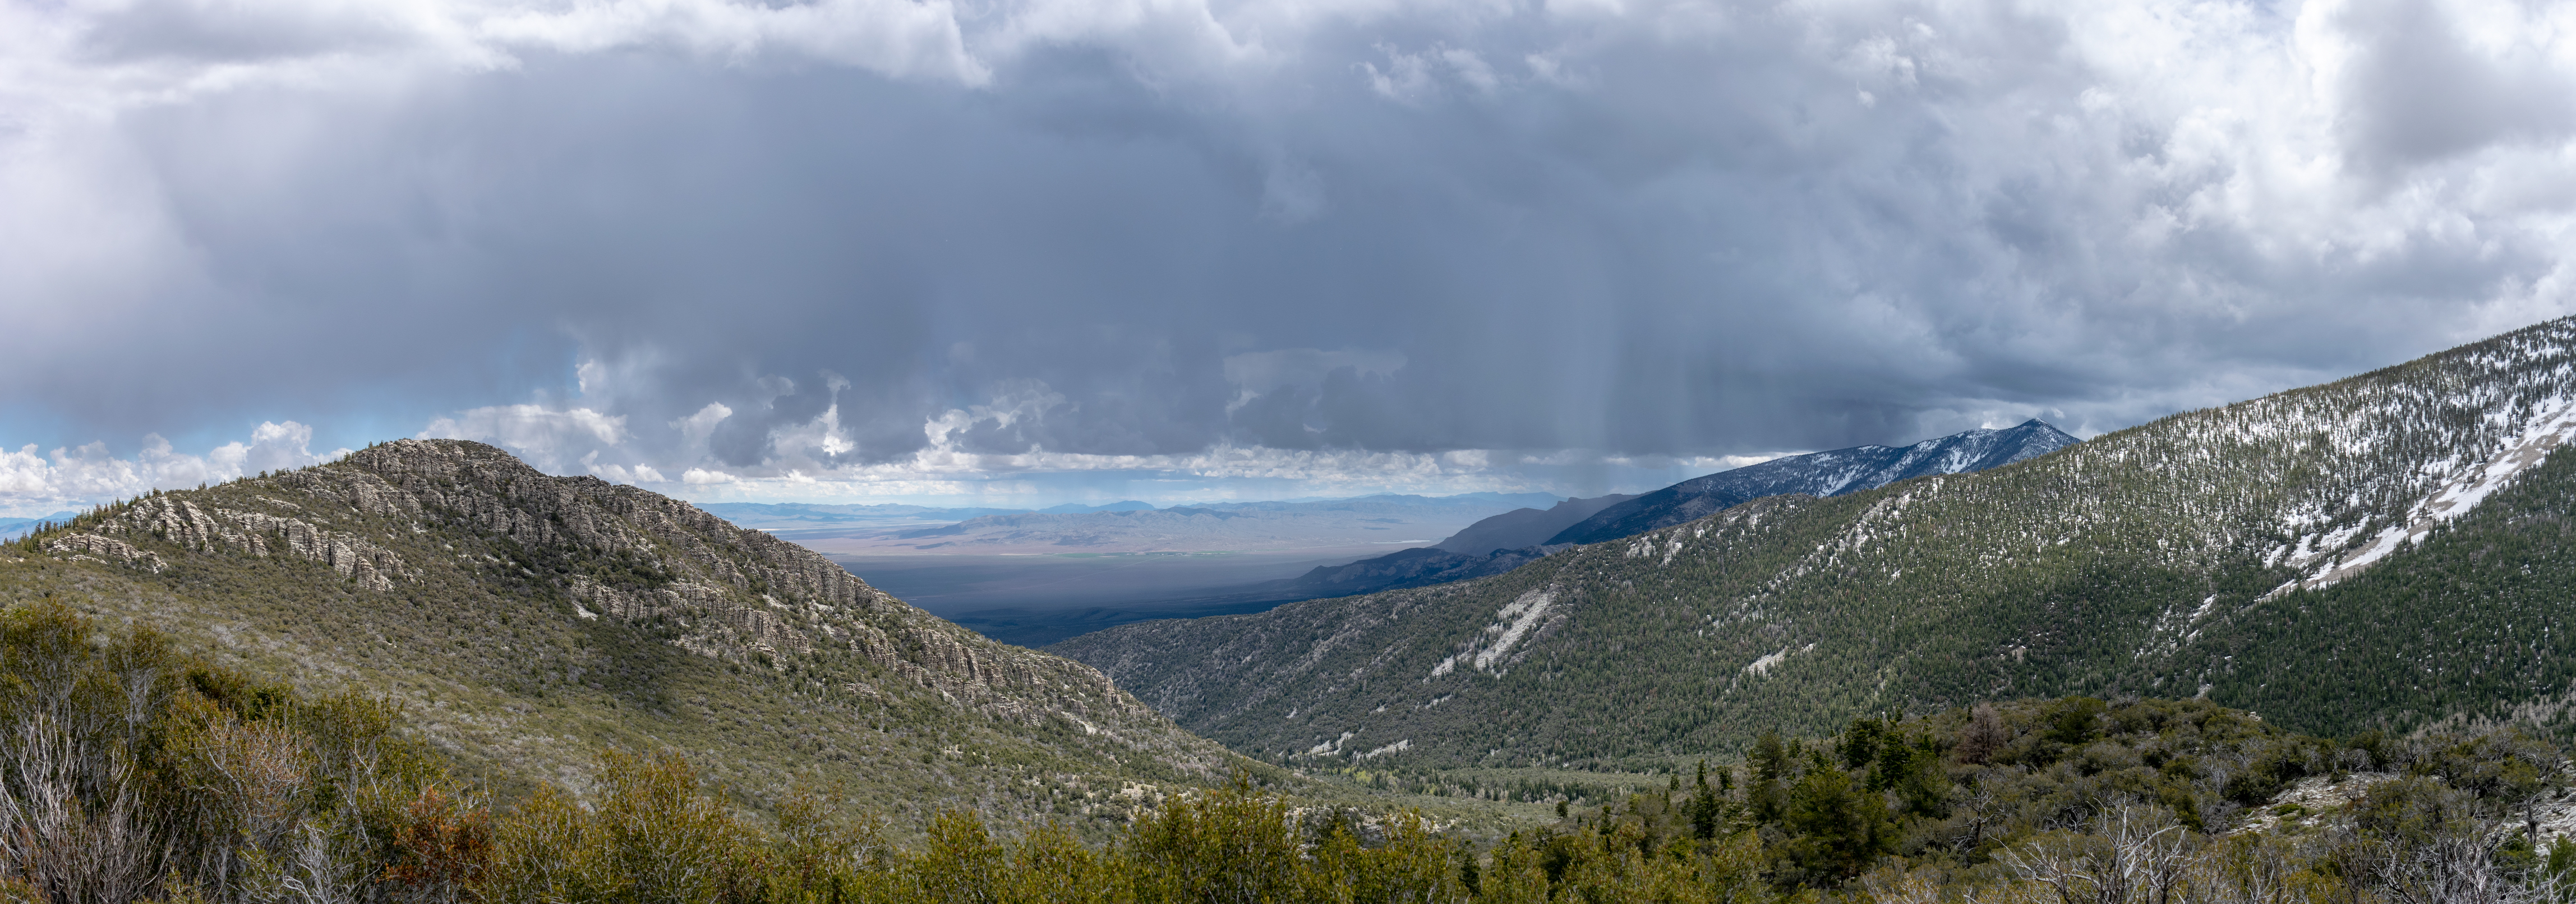 Panorama view from the mountain with storm clouds over head